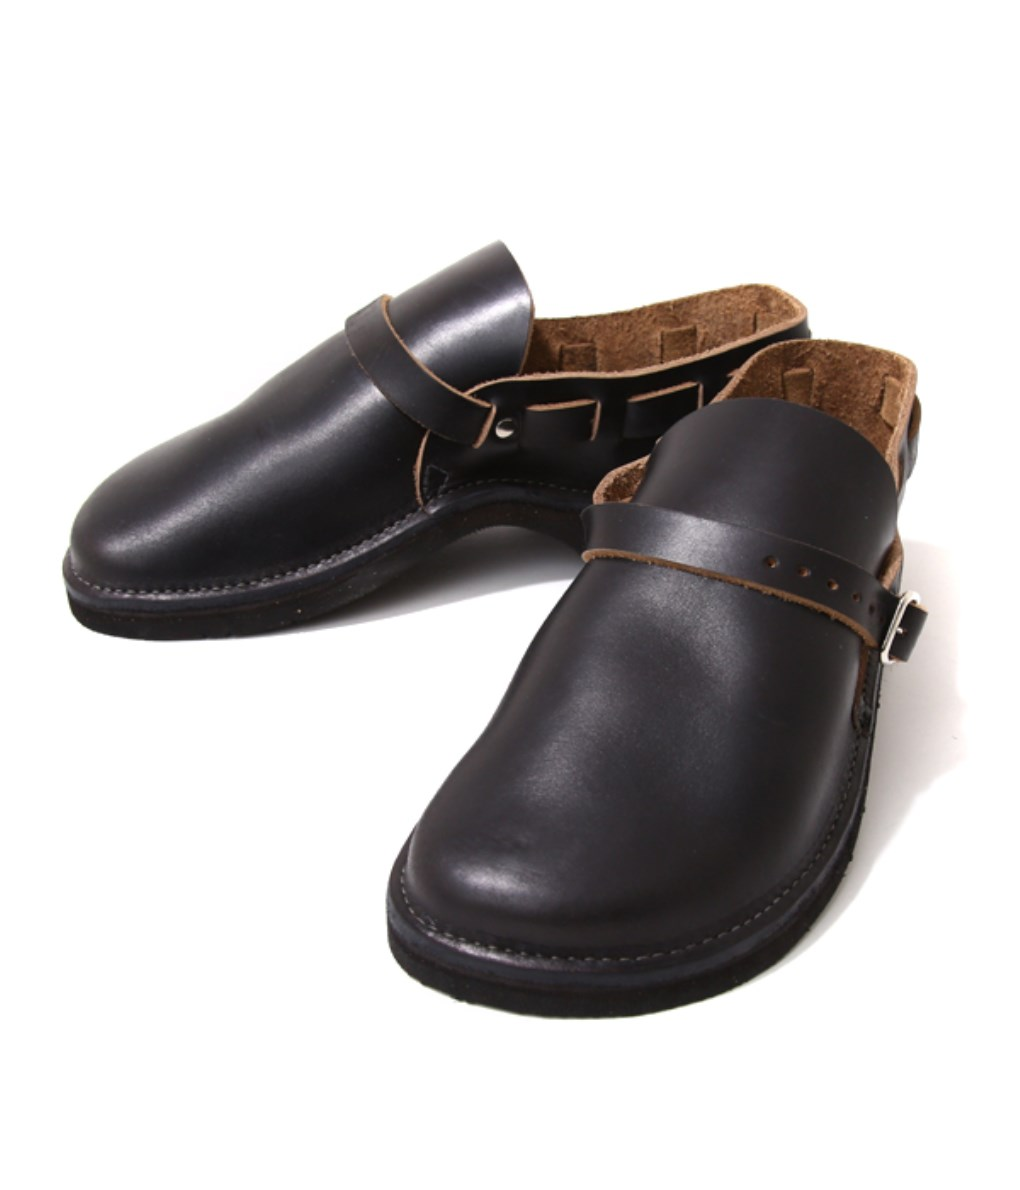 FERNAND LEATHER / フェルナンドレザー : Middle English : フェルナンドレザー レザーシューズ サンダル leather-fair-shoes 【made_in_usa】 : SH-ASST-BLK-SUEDE 【STD】